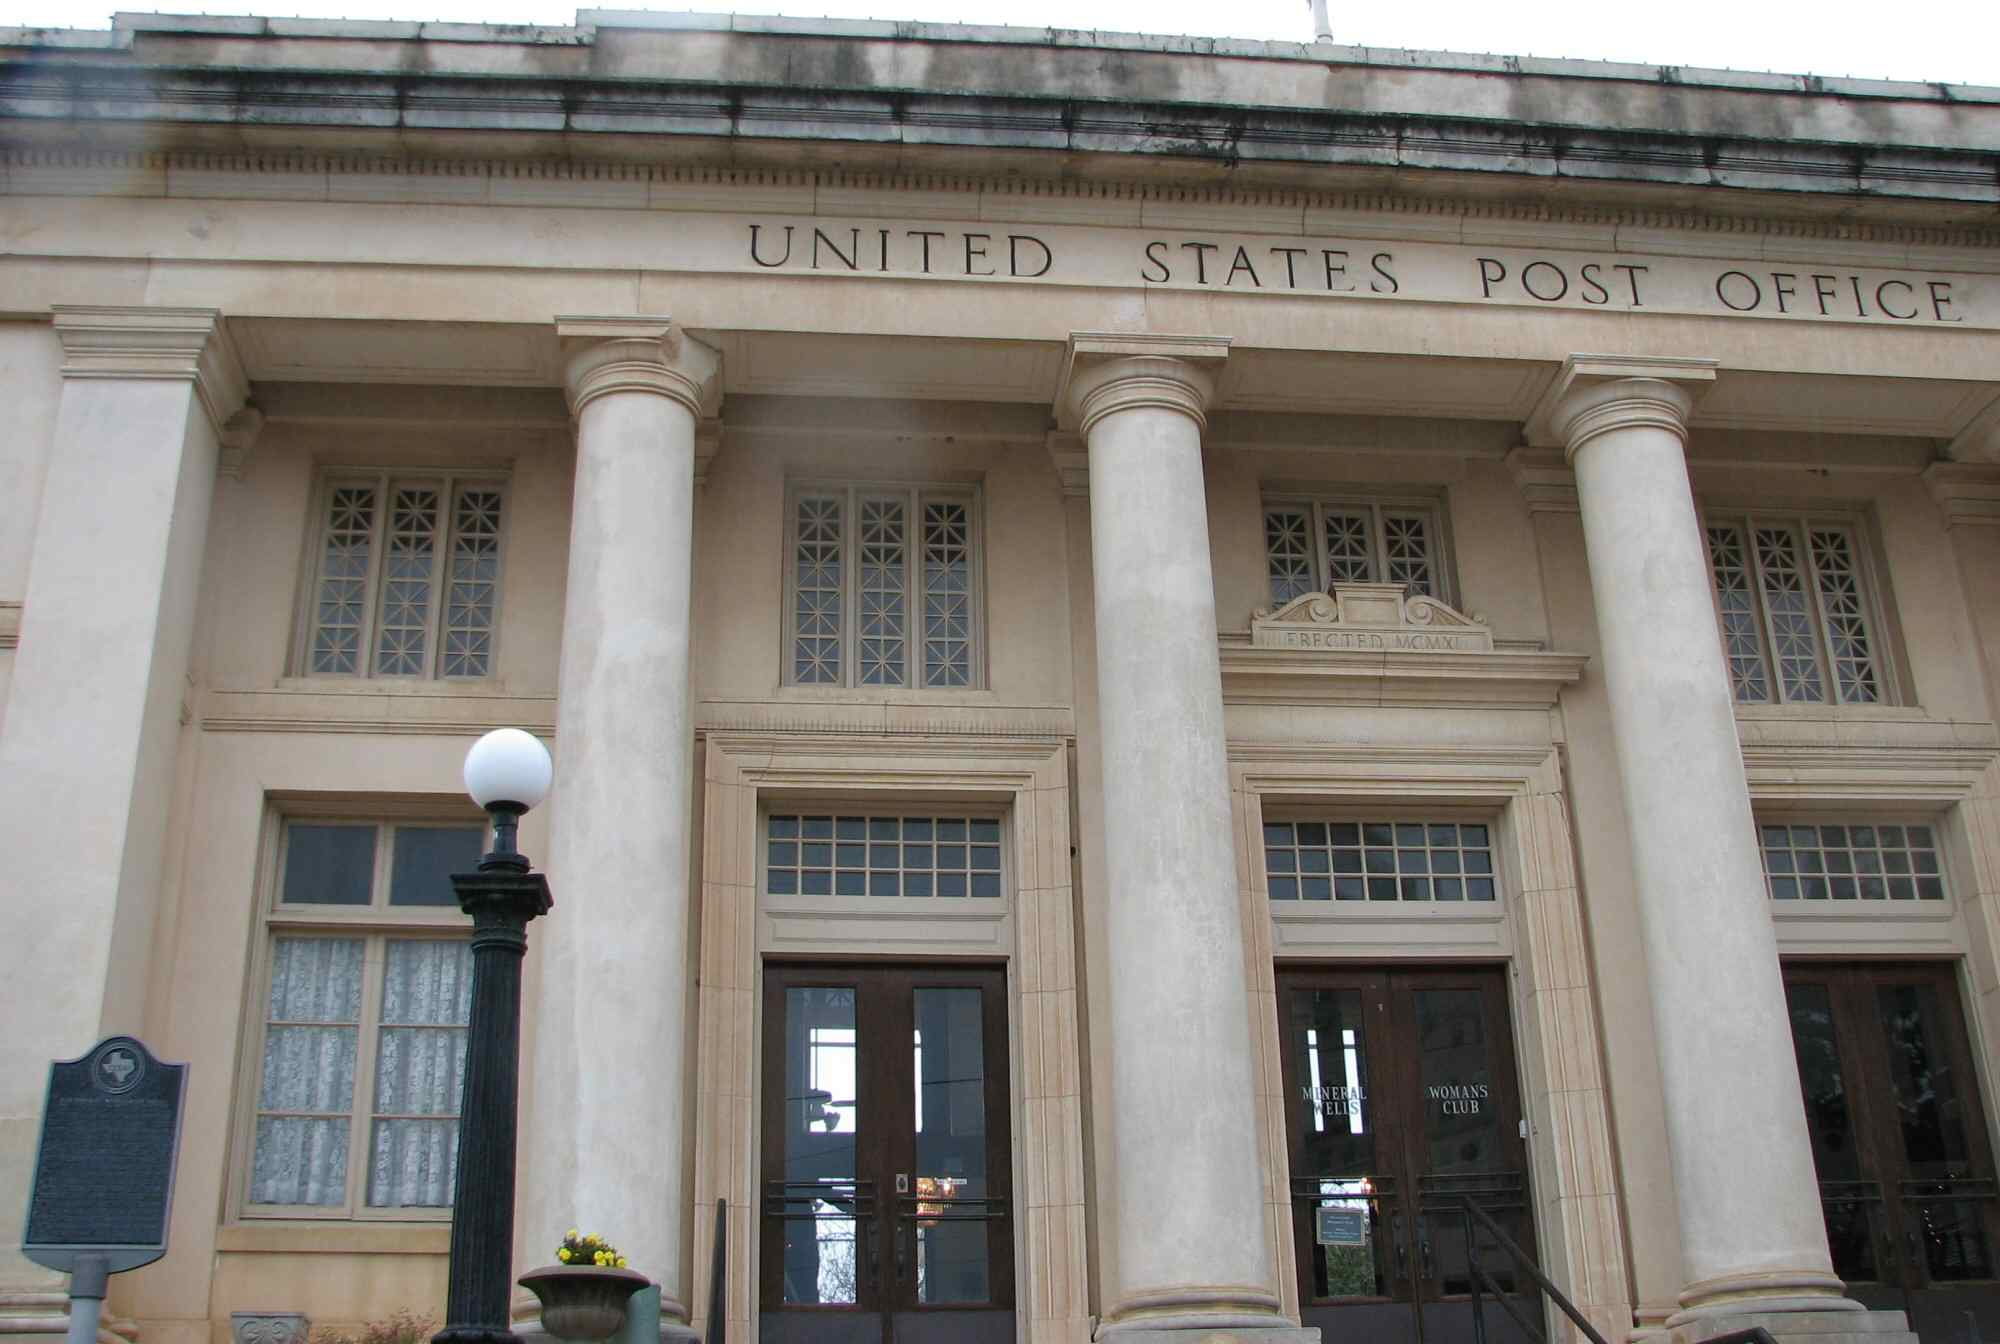 Photograph of classical columns at the old Mineral Wells Post Office in Texas.